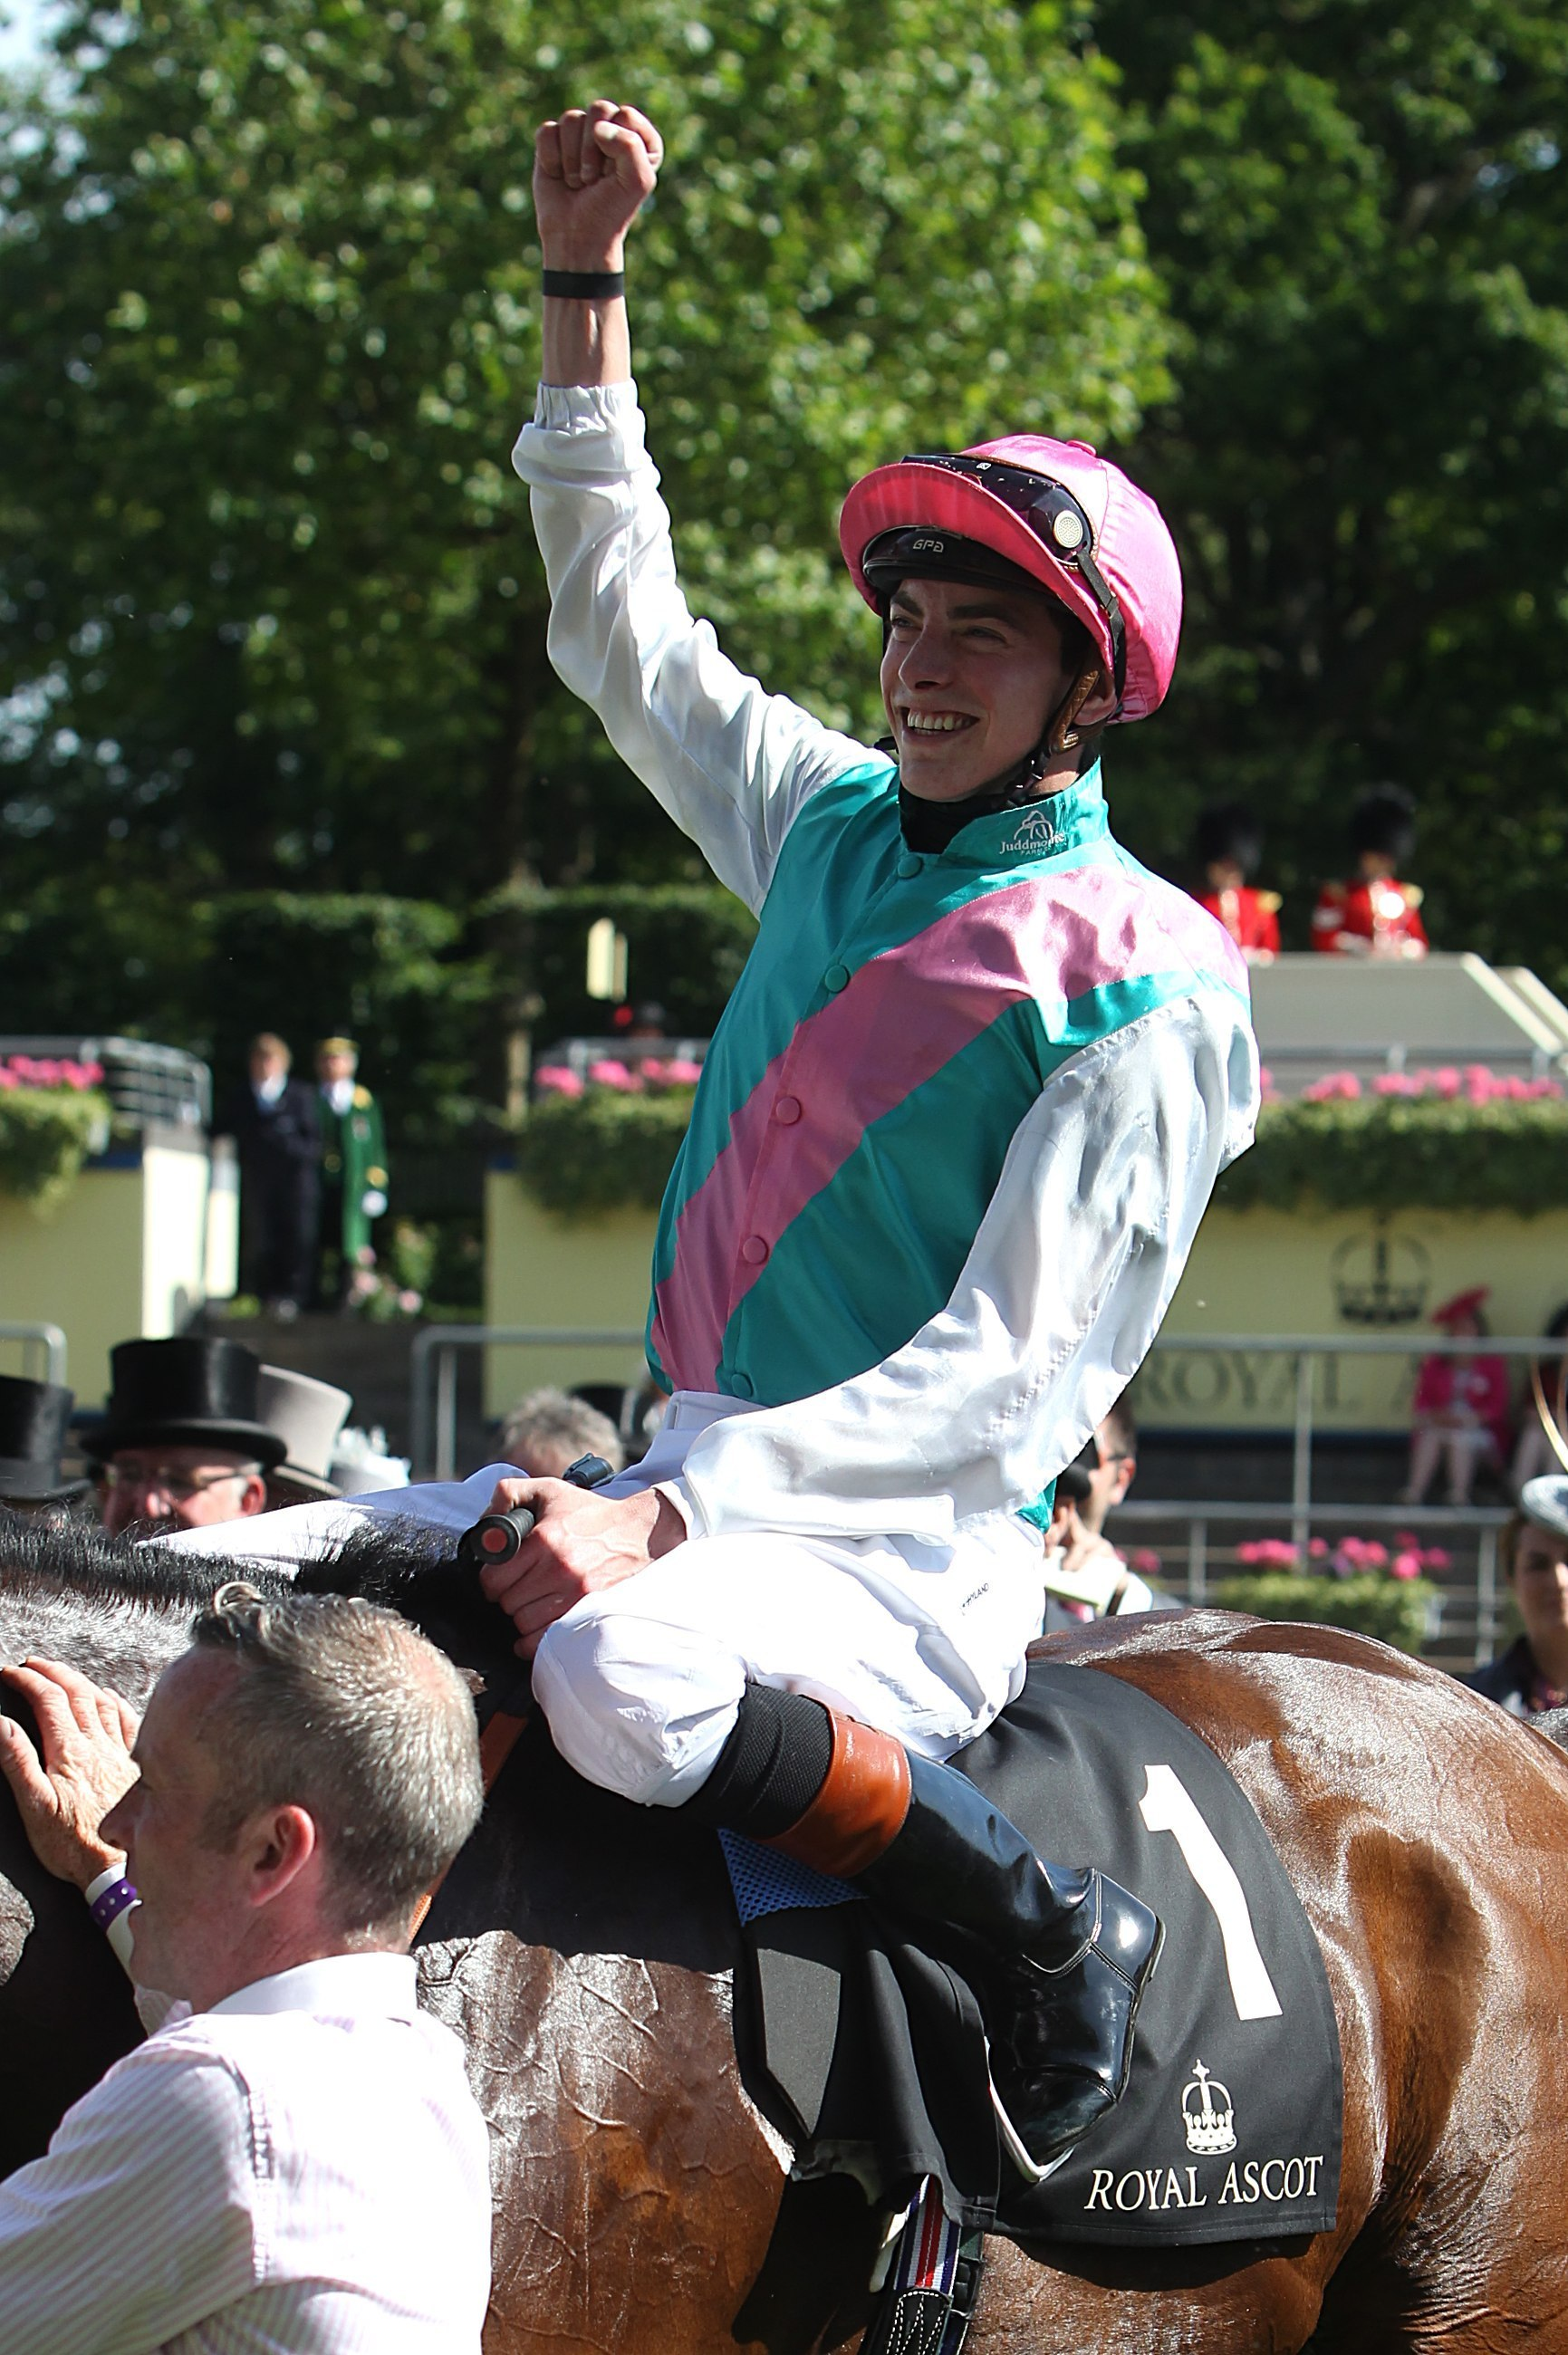 Jockey James Doyle atop Kingman after winning the St James's Palace Stakes